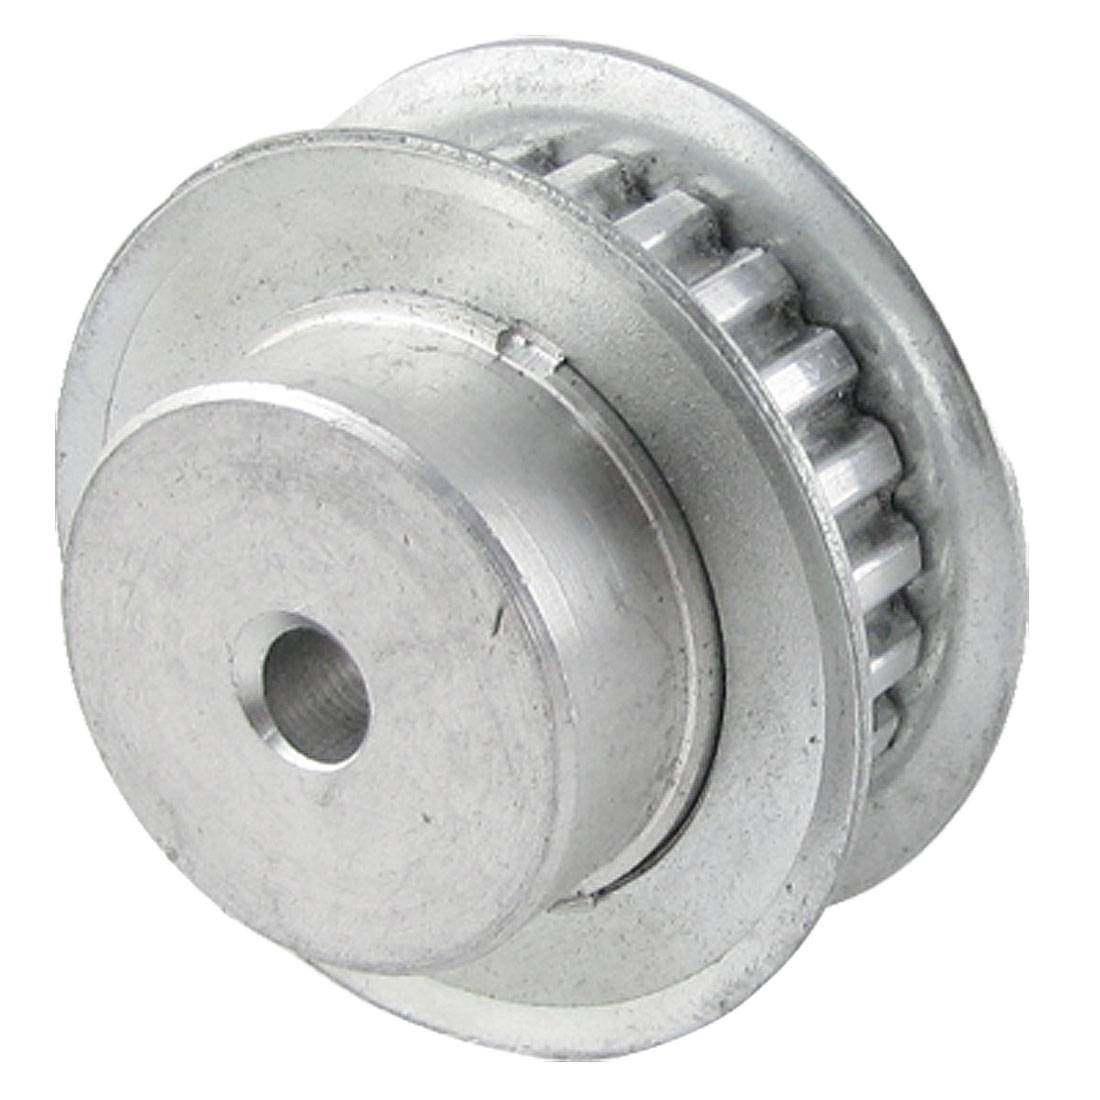 "Synchronous Groove Belt 1/5"" Pitch 23 Tooth Timing Pulley"